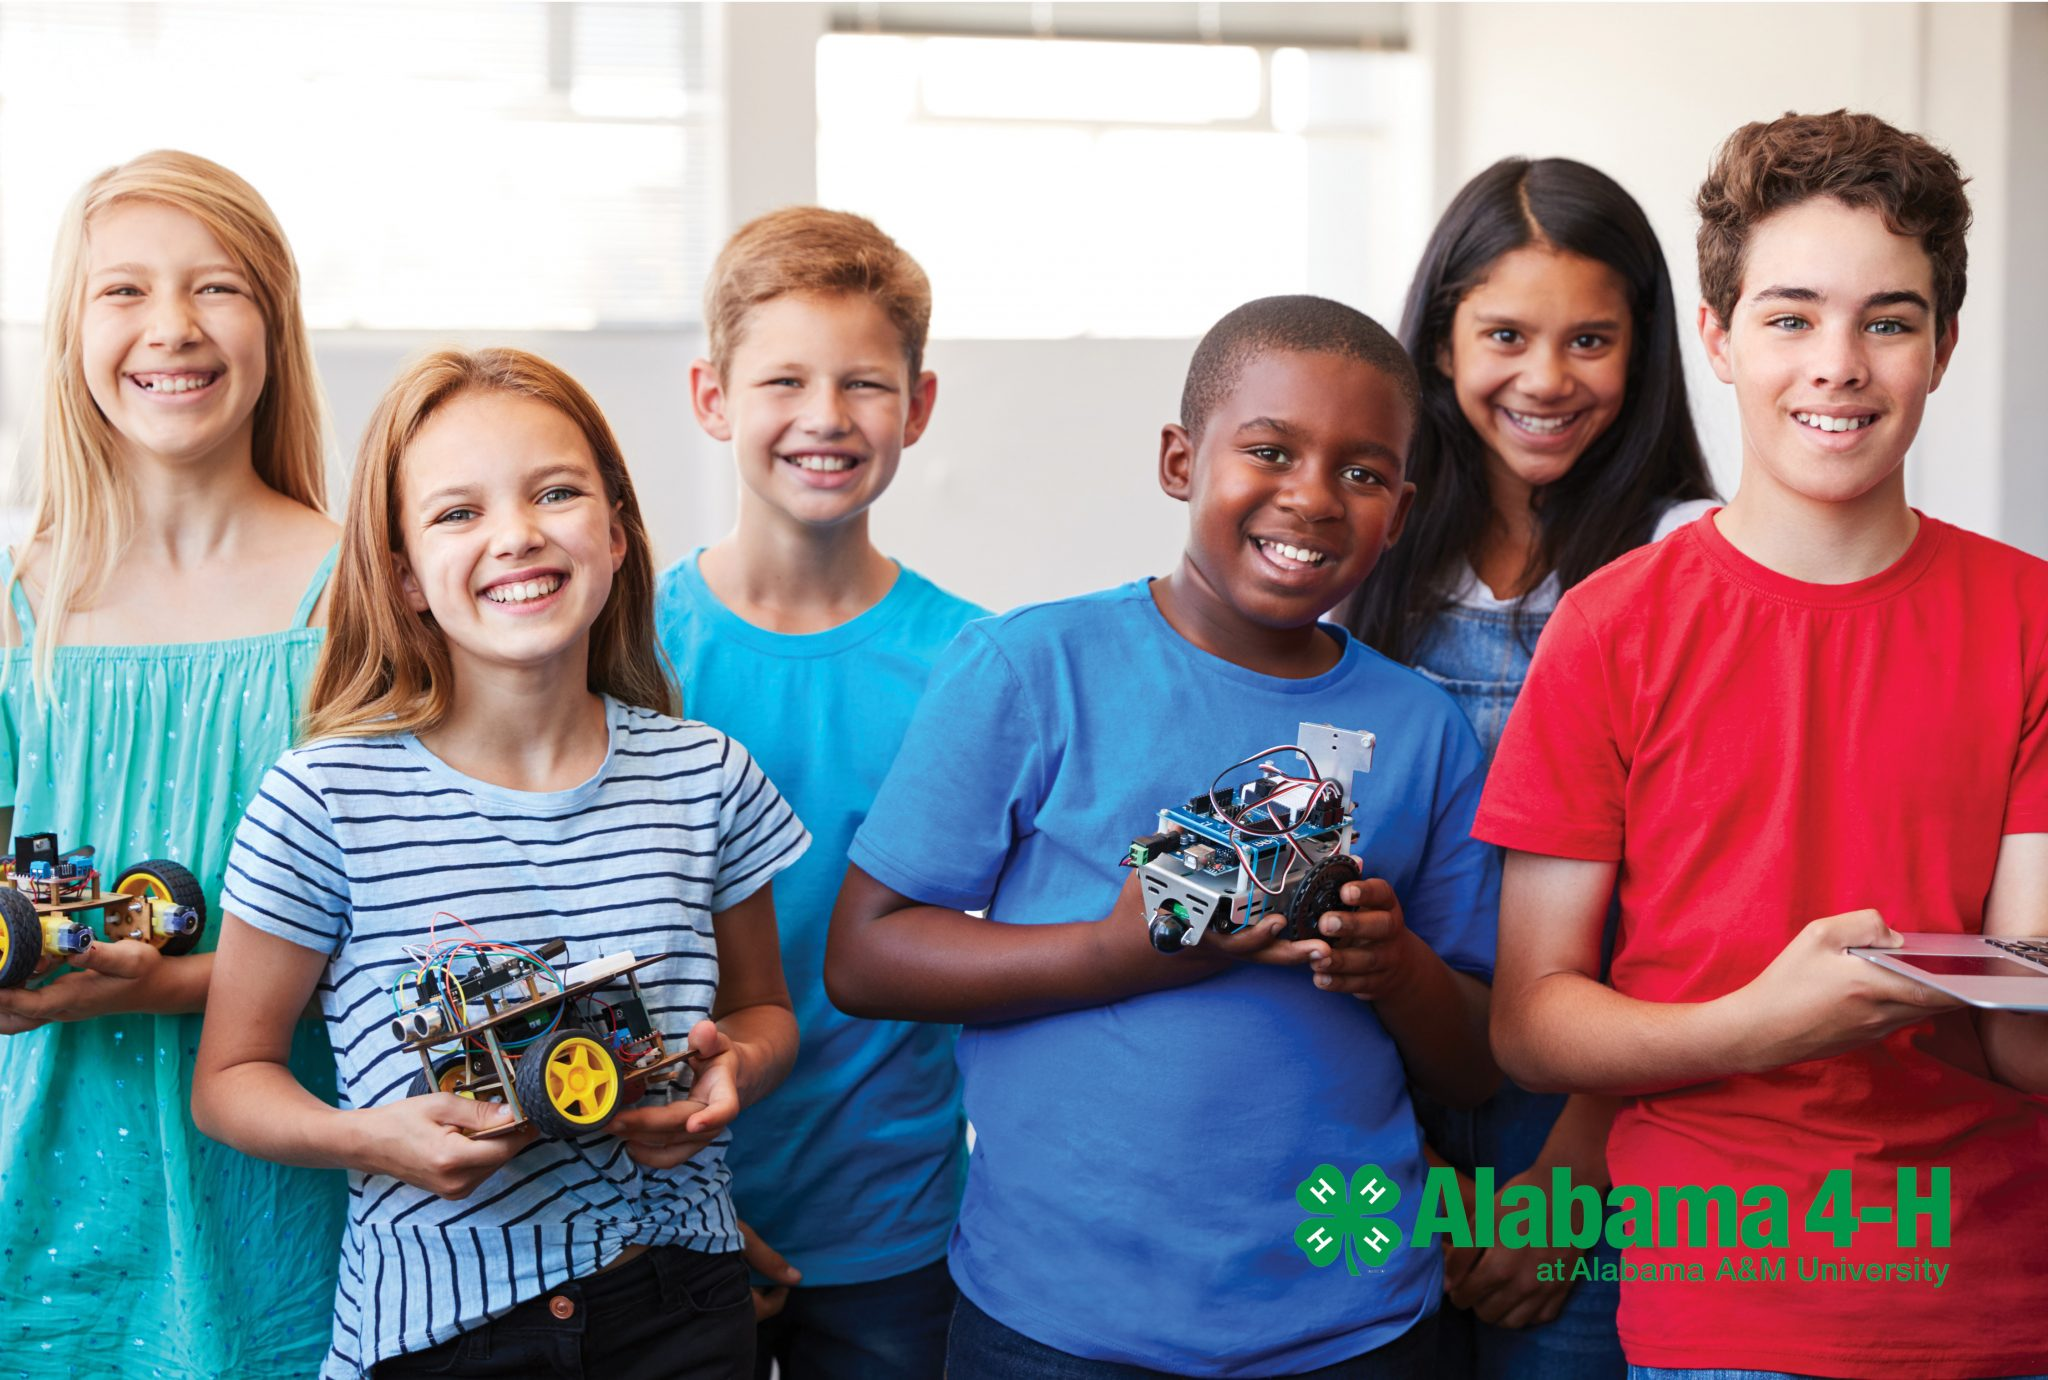 Six diverse middle school students hold up robotics projects while smiling